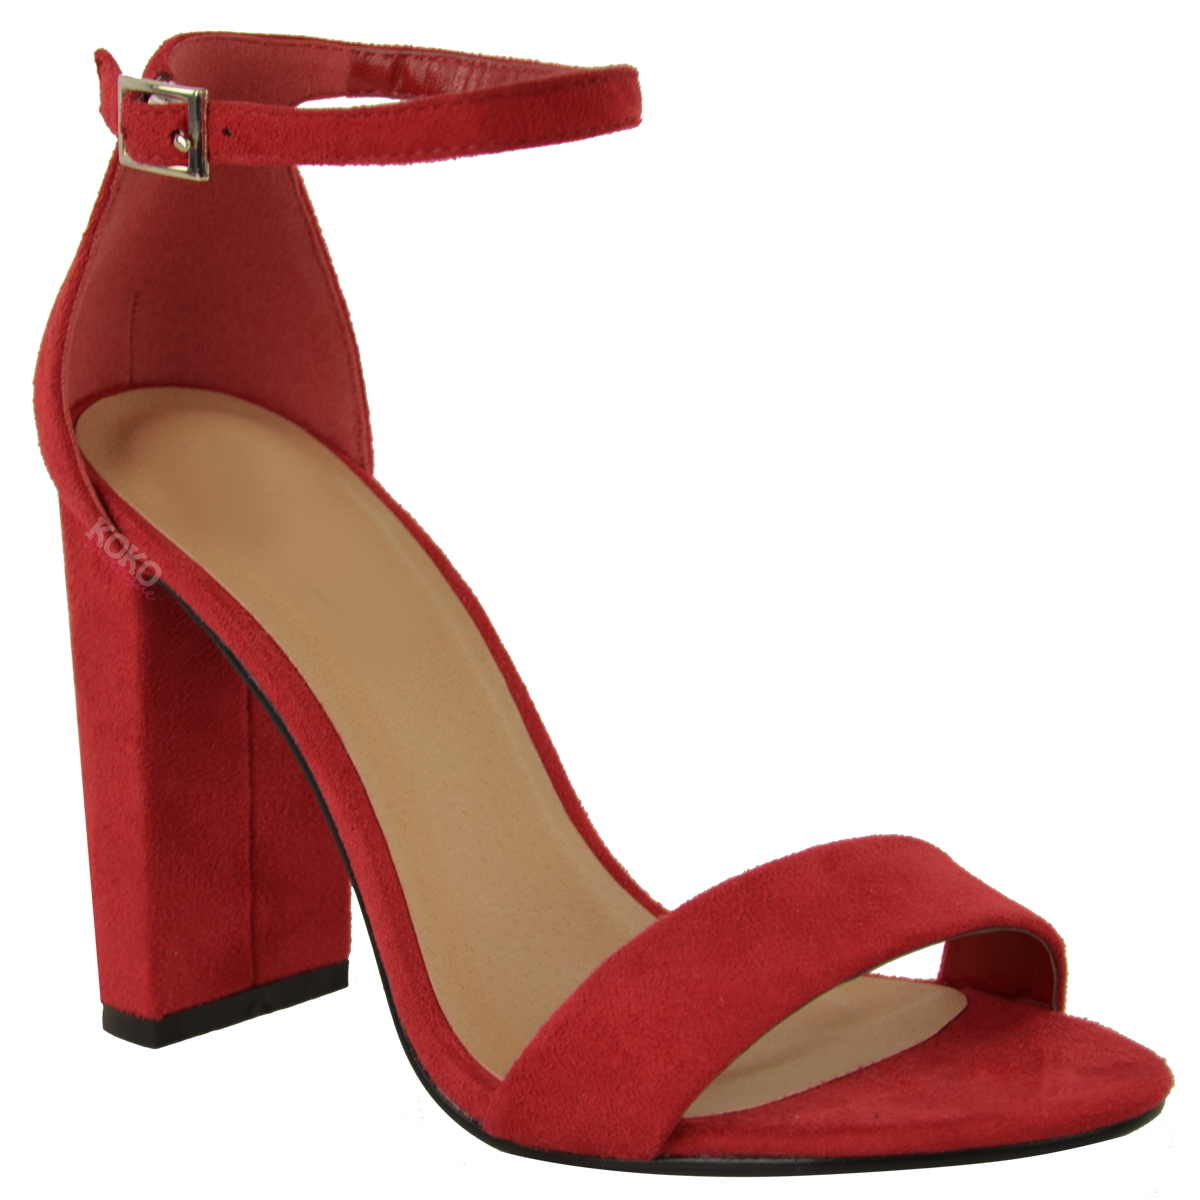 Womens-Ladies-Block-High-Heels-Ankle-Strap-Sexy-Open-Toe-Sandals-Shoes-Size-New miniatuur 43